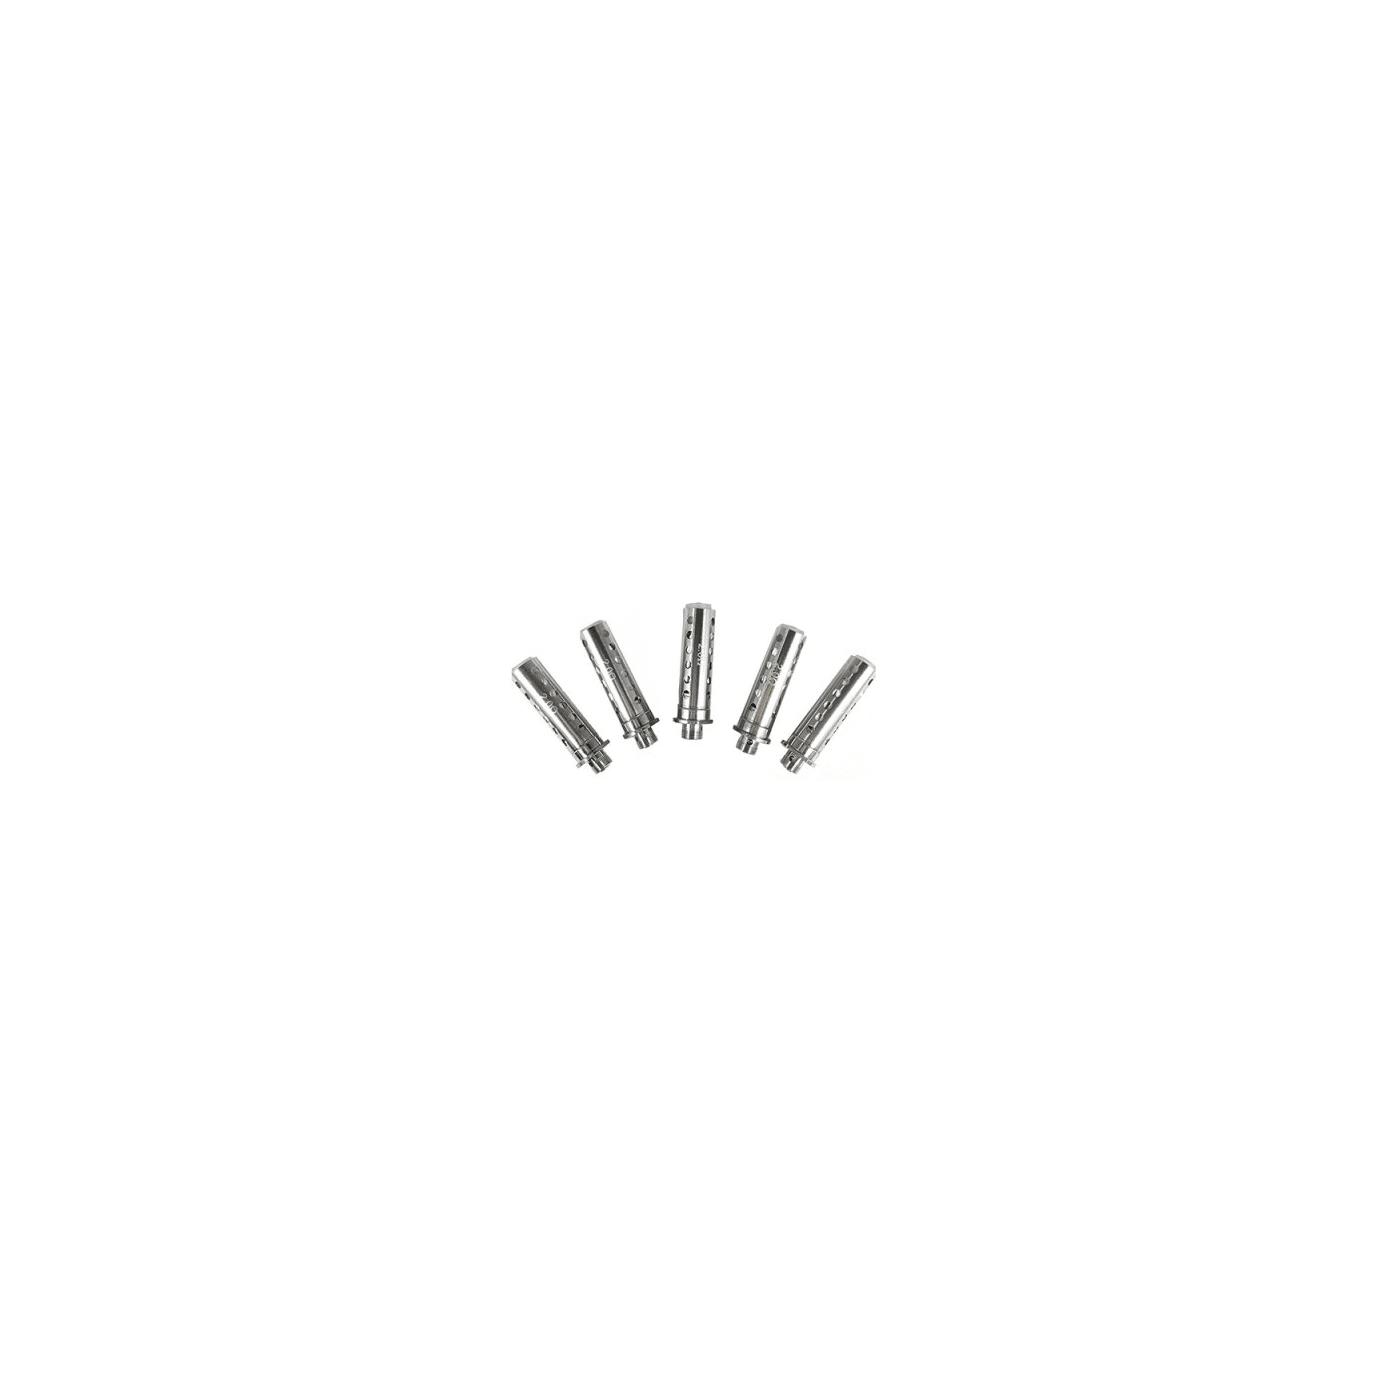 Innokin iClear 30S Replacement Heads 5 Pack